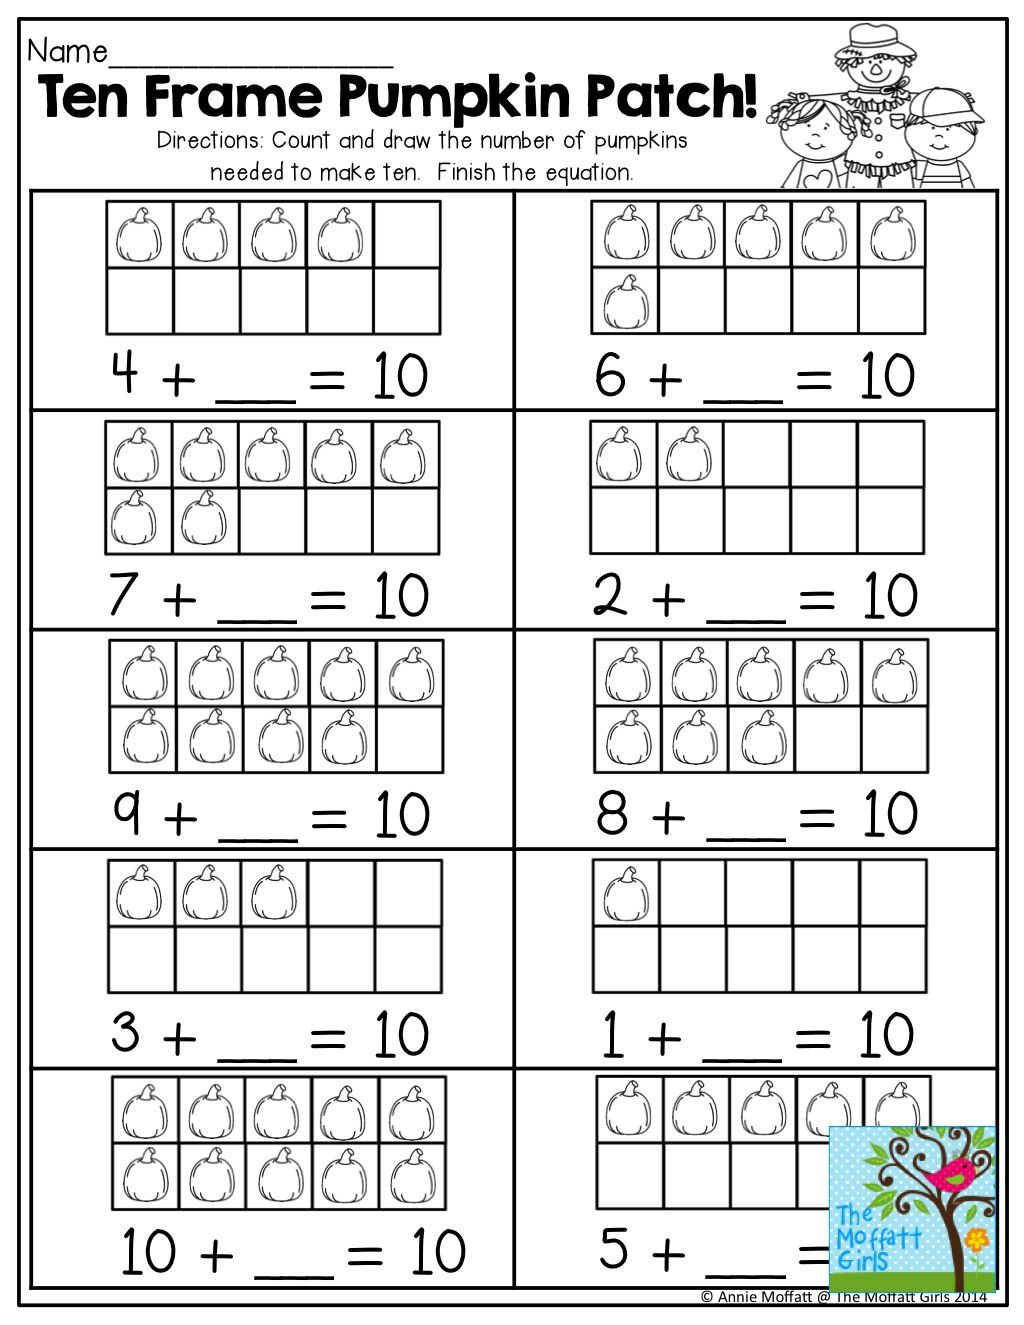 Ten Frame Pumpkin Patch Math Activities Elementary Math Worksheets Teaching Math